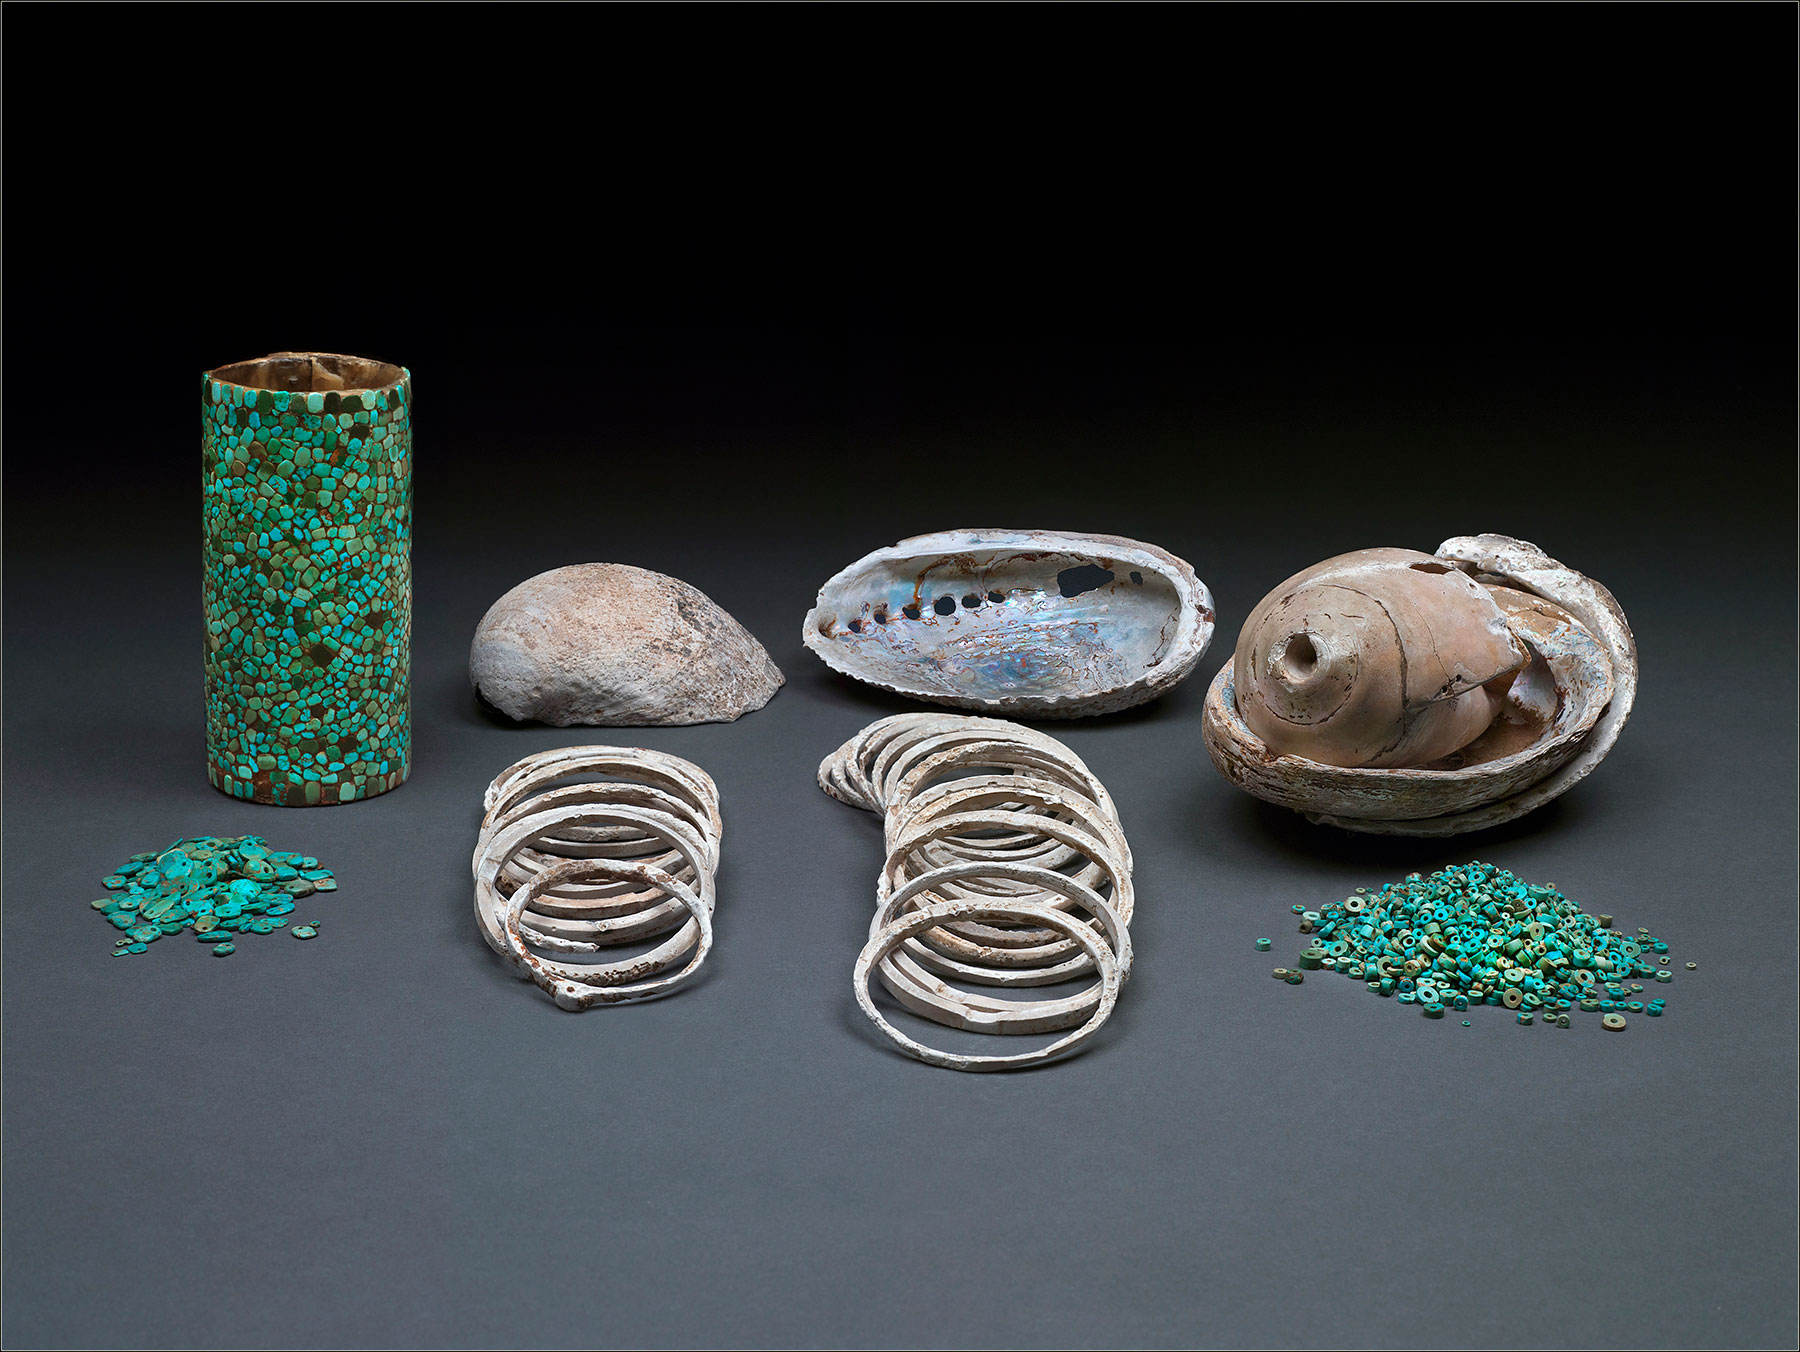 The richest burial in Pueblo Bonito included abalone shells, a conch shell trumpet, shell bracelets, turquoise jewelry and a wicker cylinder vessel covered with a turquoise mosaic.